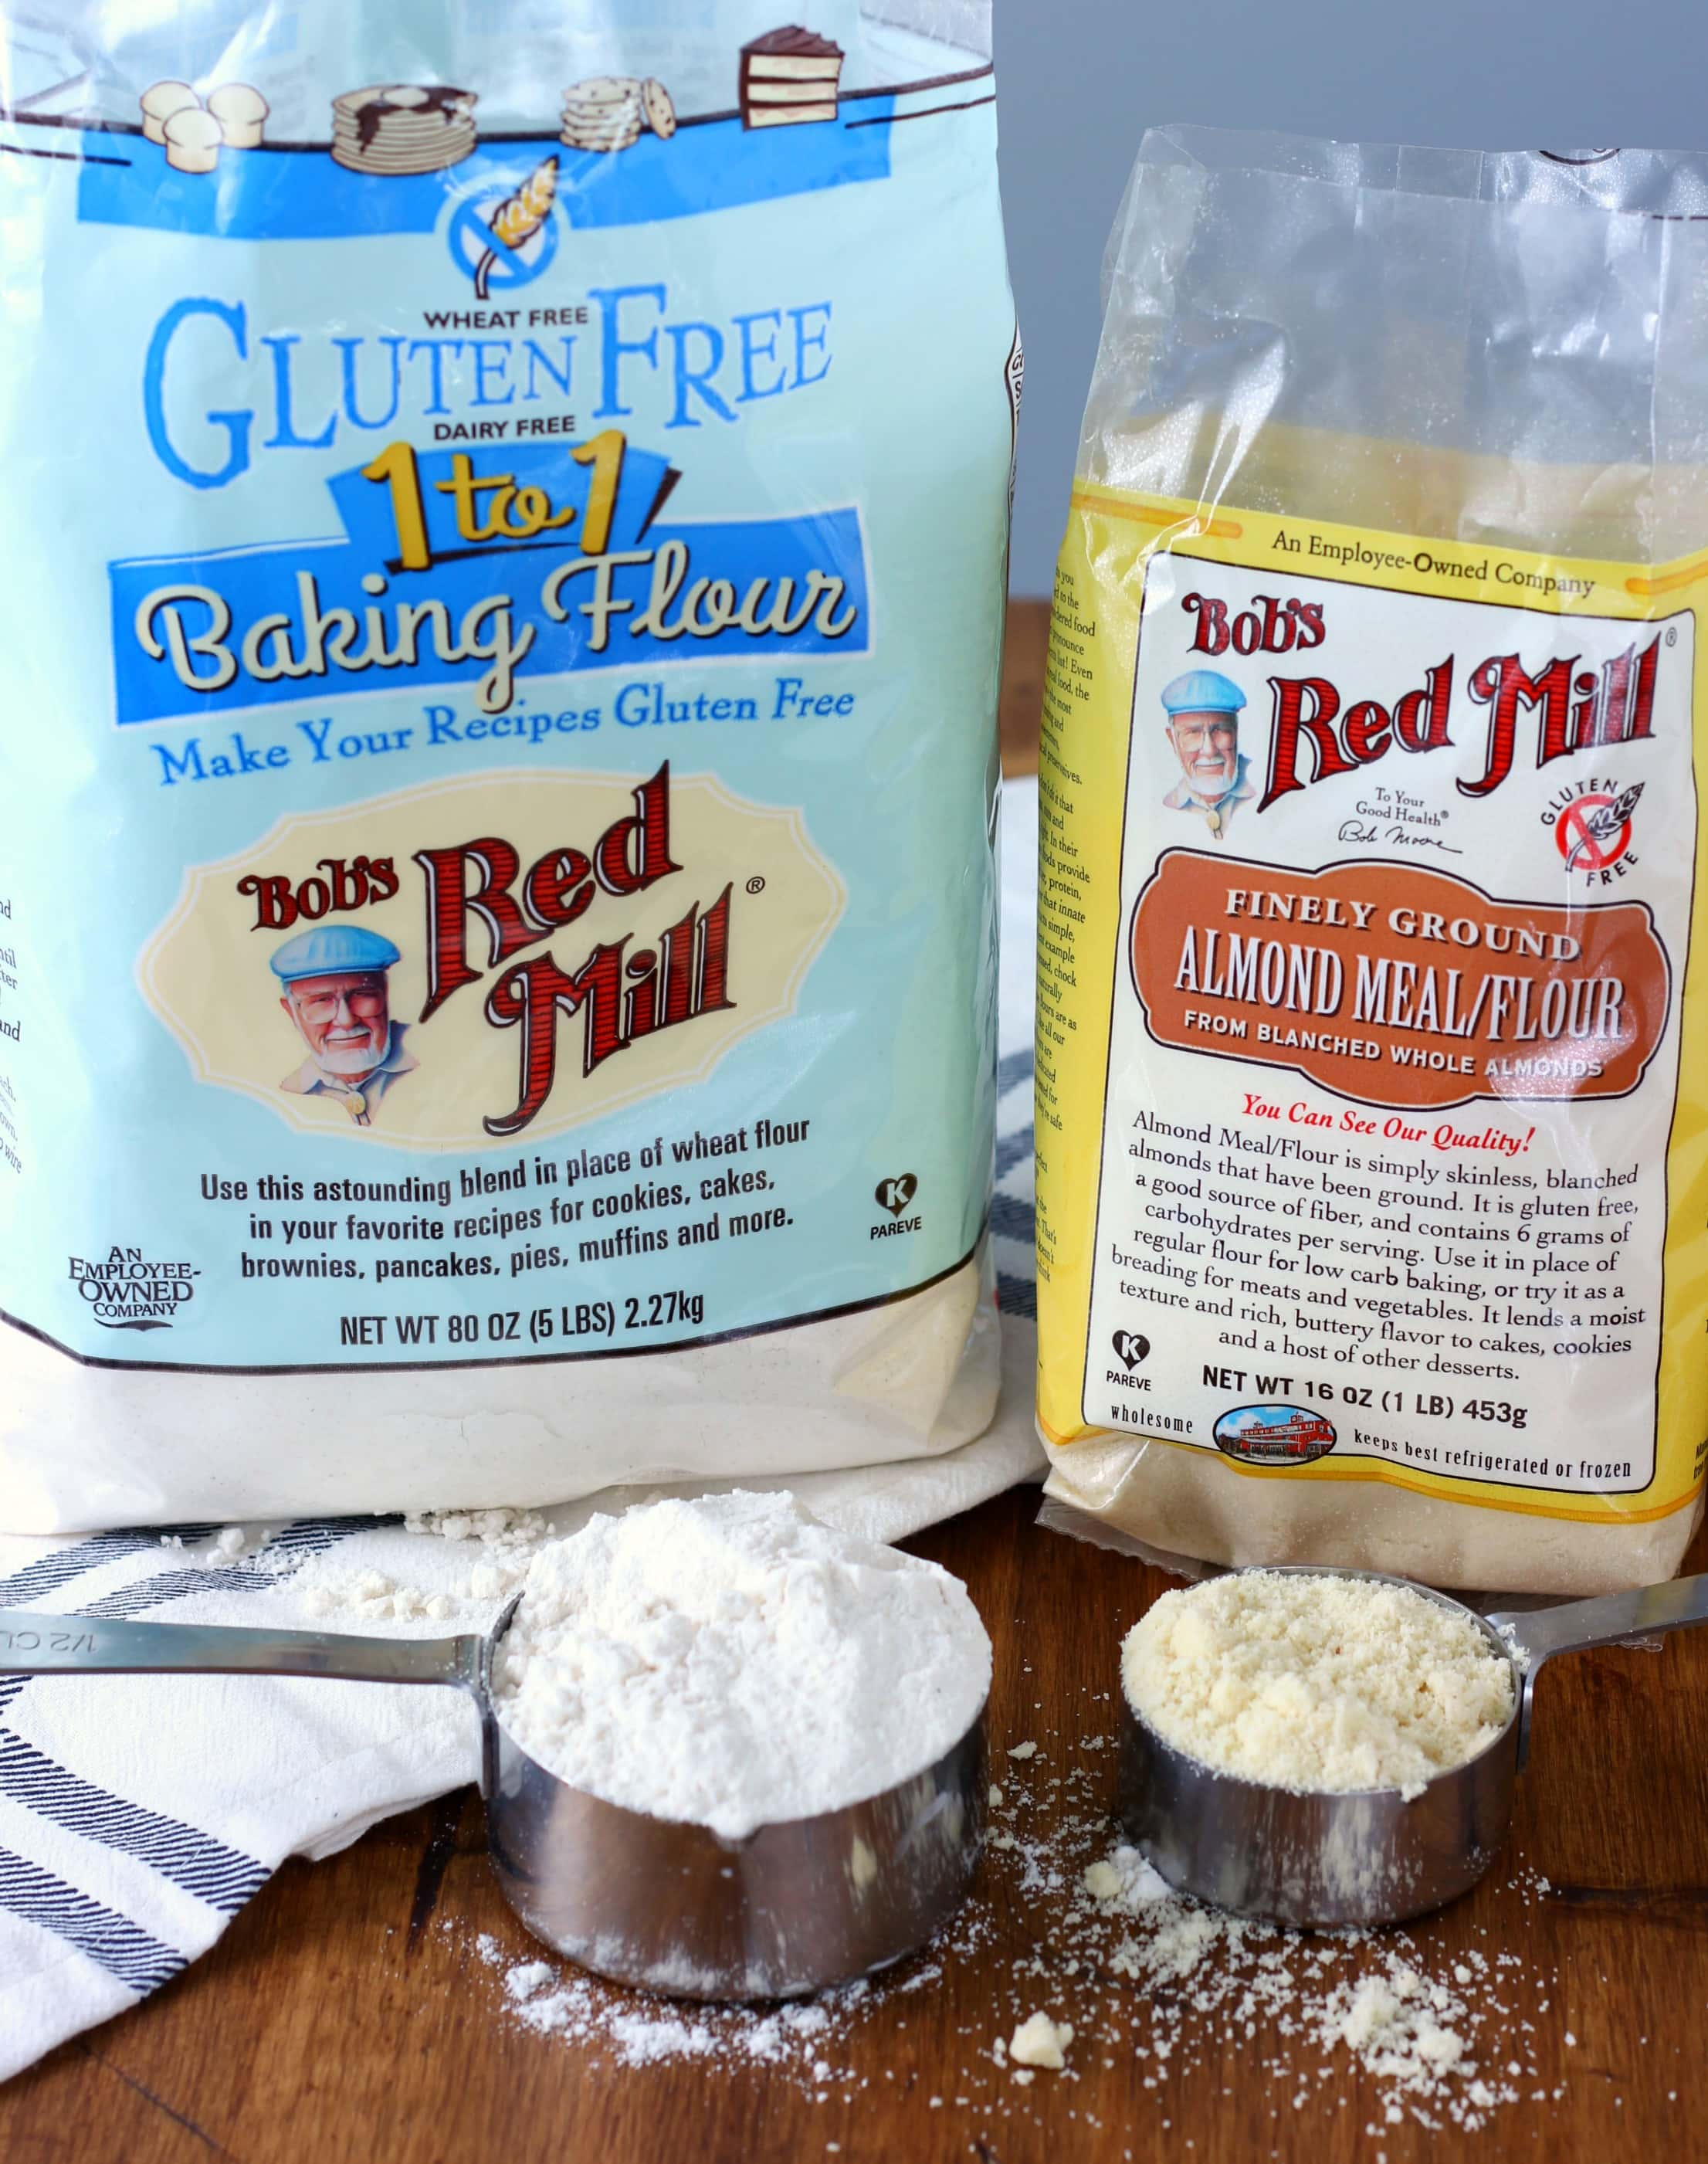 Bob's Red Mill Gluten Free Flours